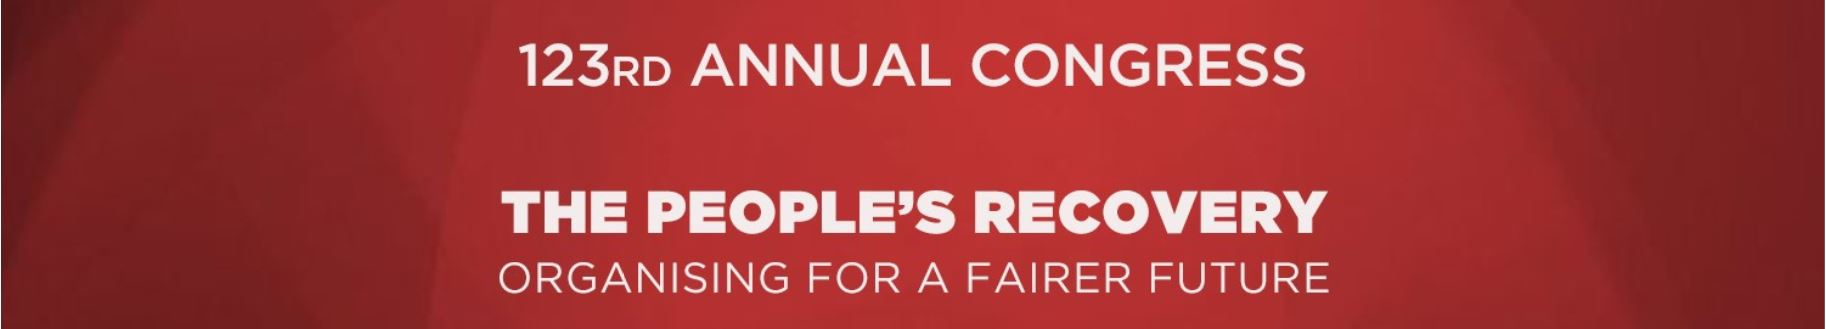 The People's Recovery organising for a fairer future